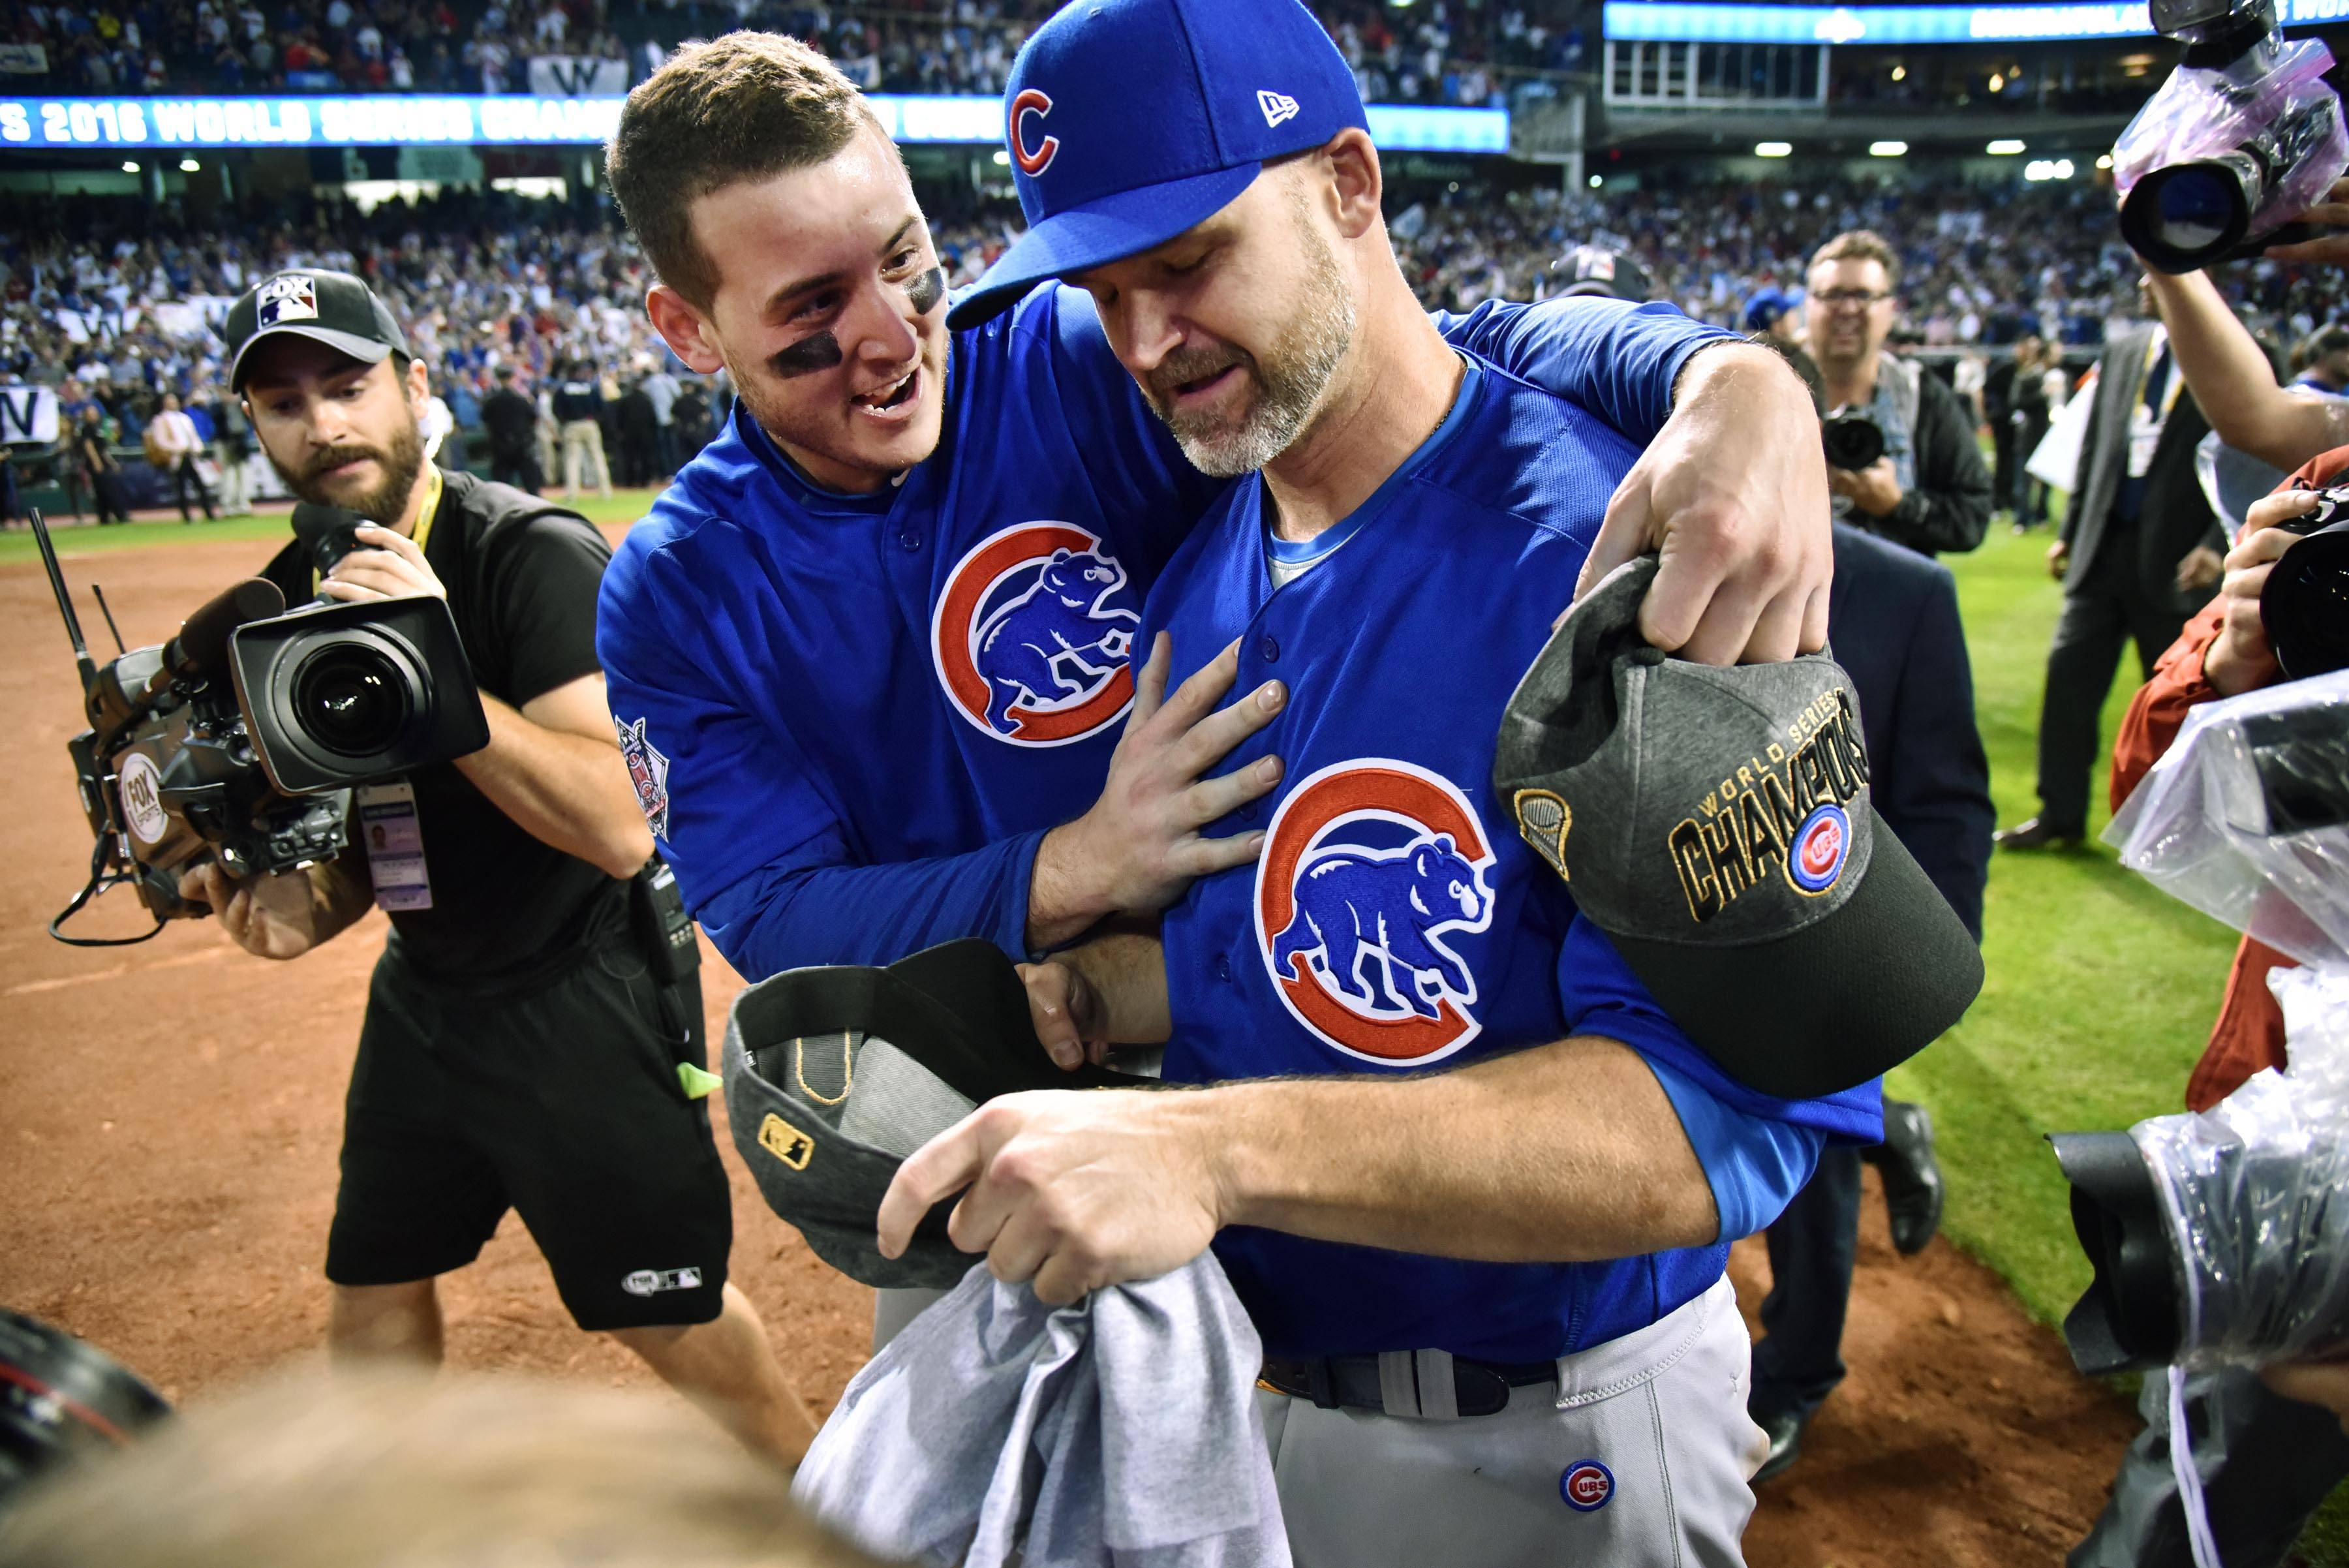 Chicago Cubs first baseman Anthony Rizzo hugs teammate David Ross Wednesday after Game 7 of the World Series at Progressive Field in Cleveland.